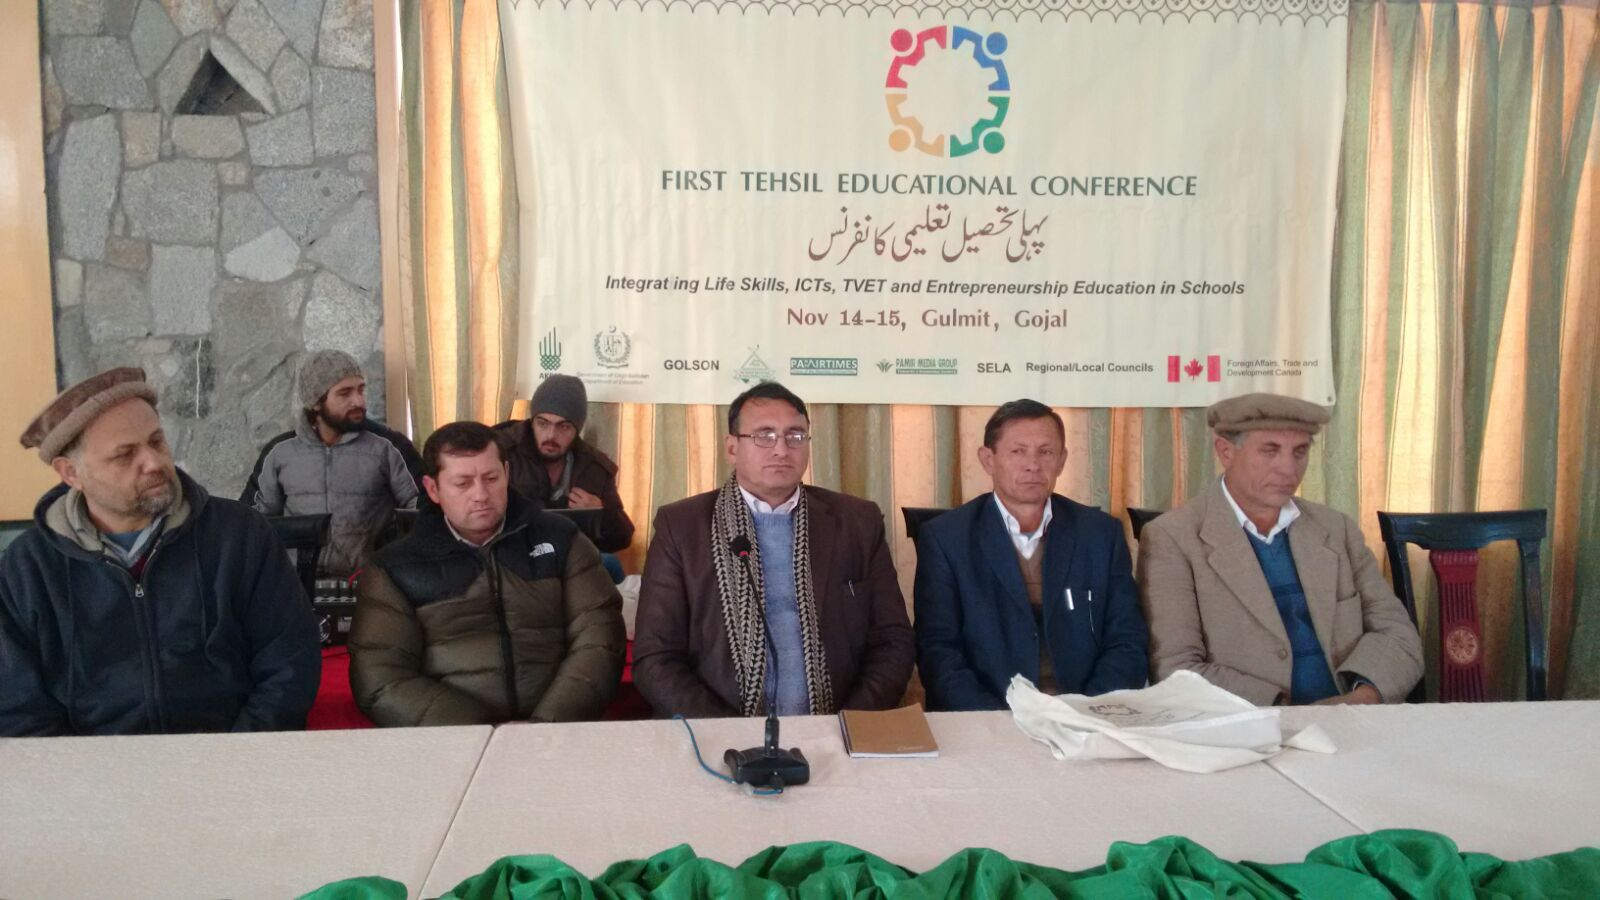 First Tehsil Education Conference underway in Gulmit, Gojal Valley